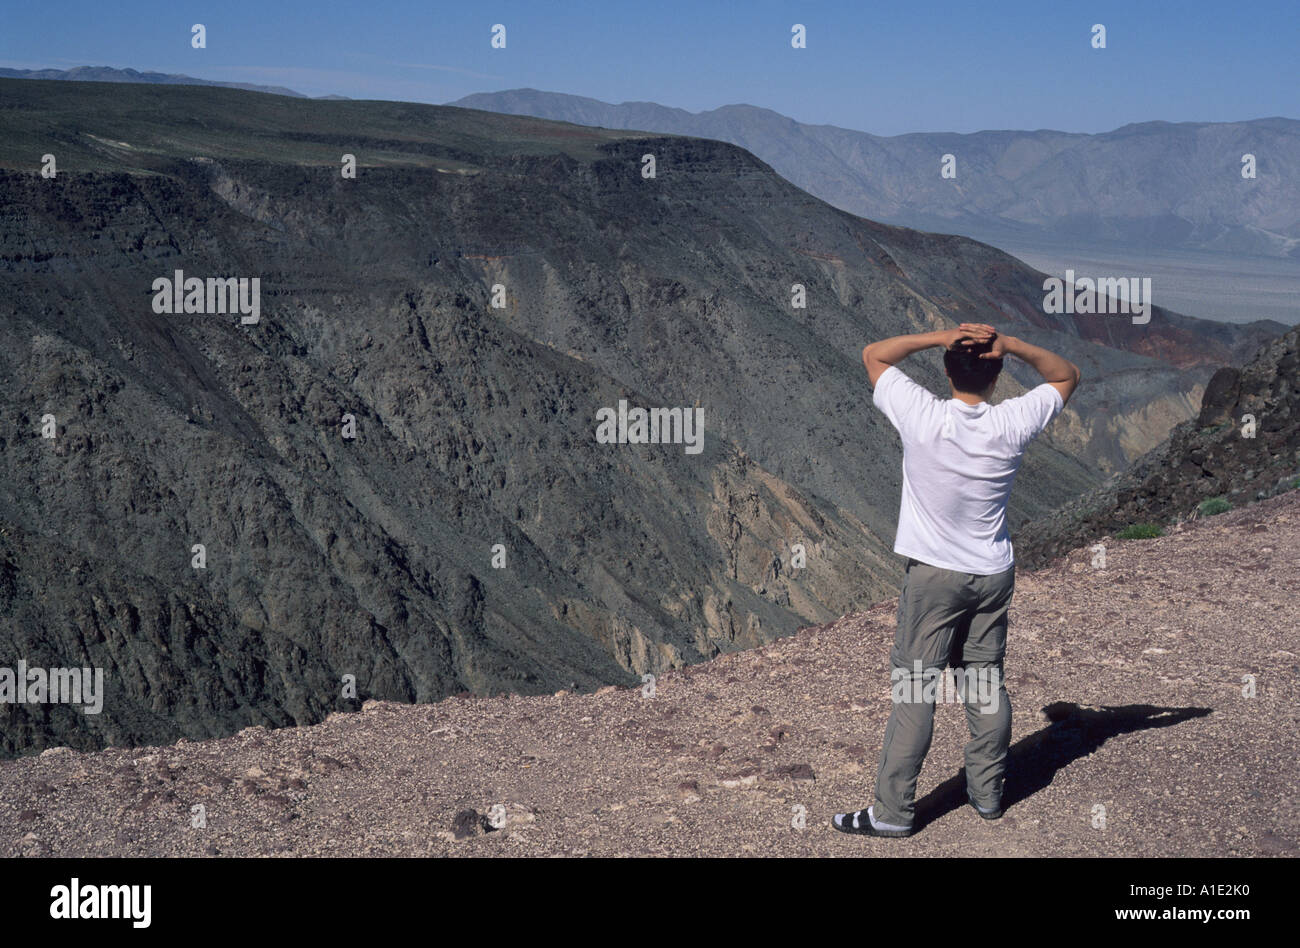 A tourist enjoys the view at Father Crowley Point Death Valley National Park California United States of AmericaStock Photo